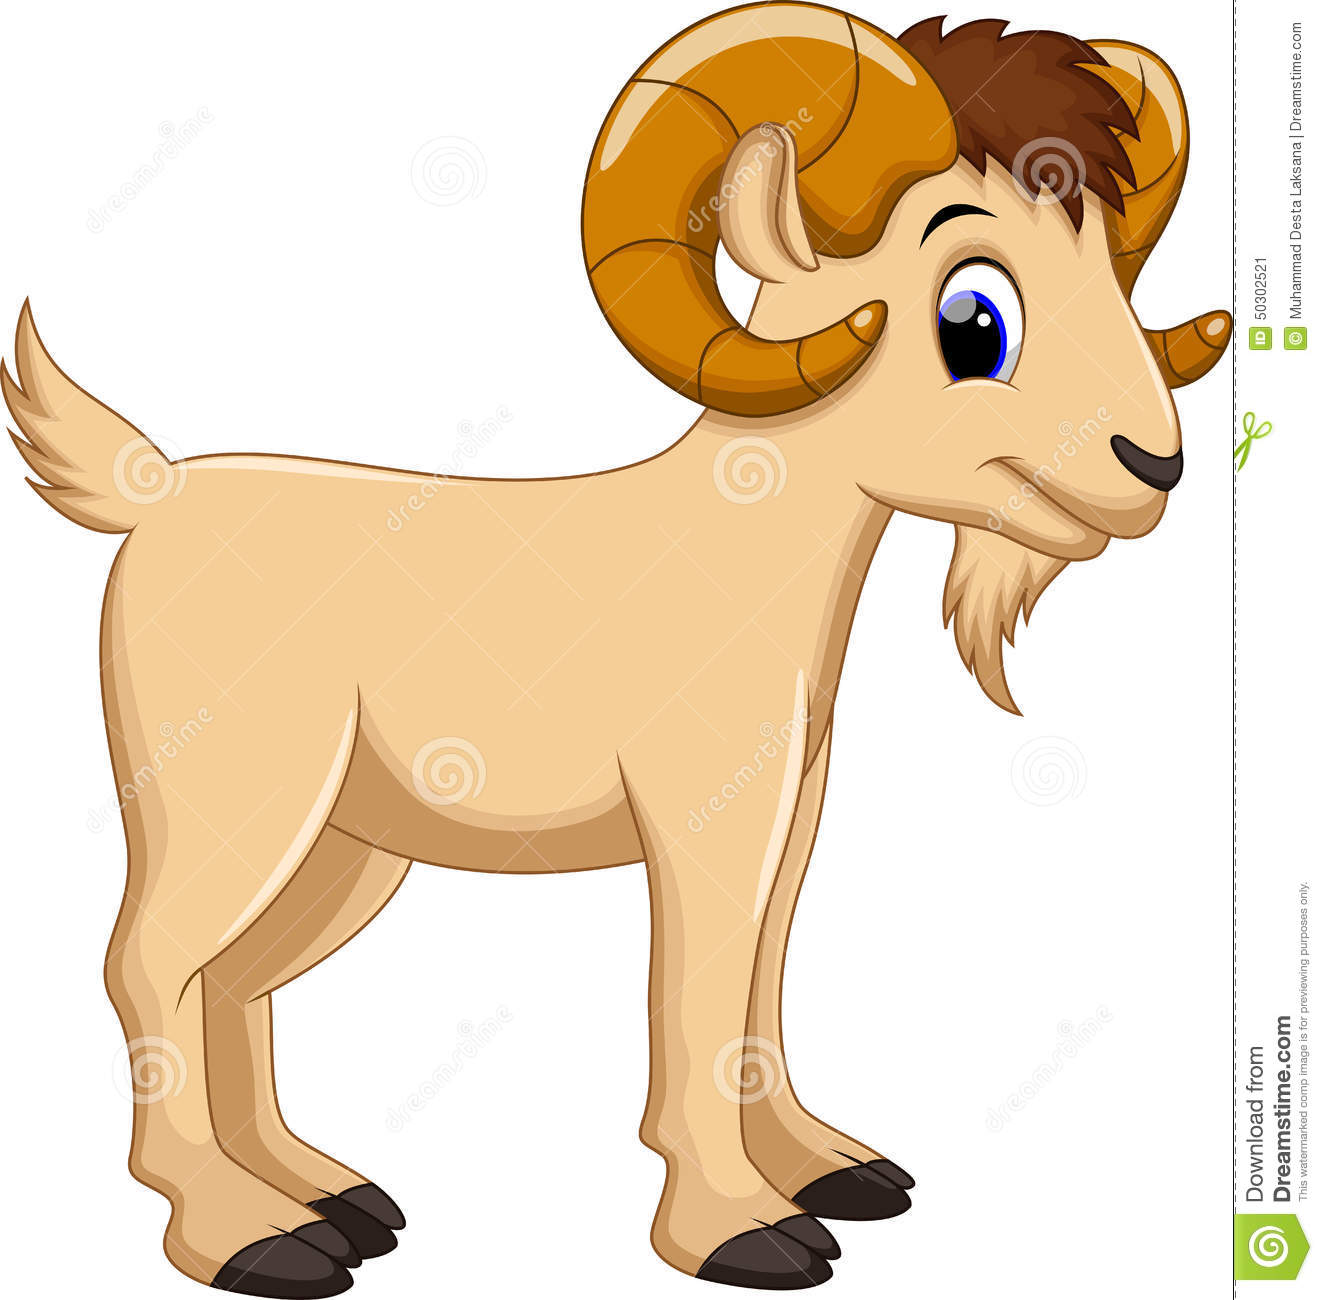 Cute Goat Cartoon Stock Illustration - Image: 50302521